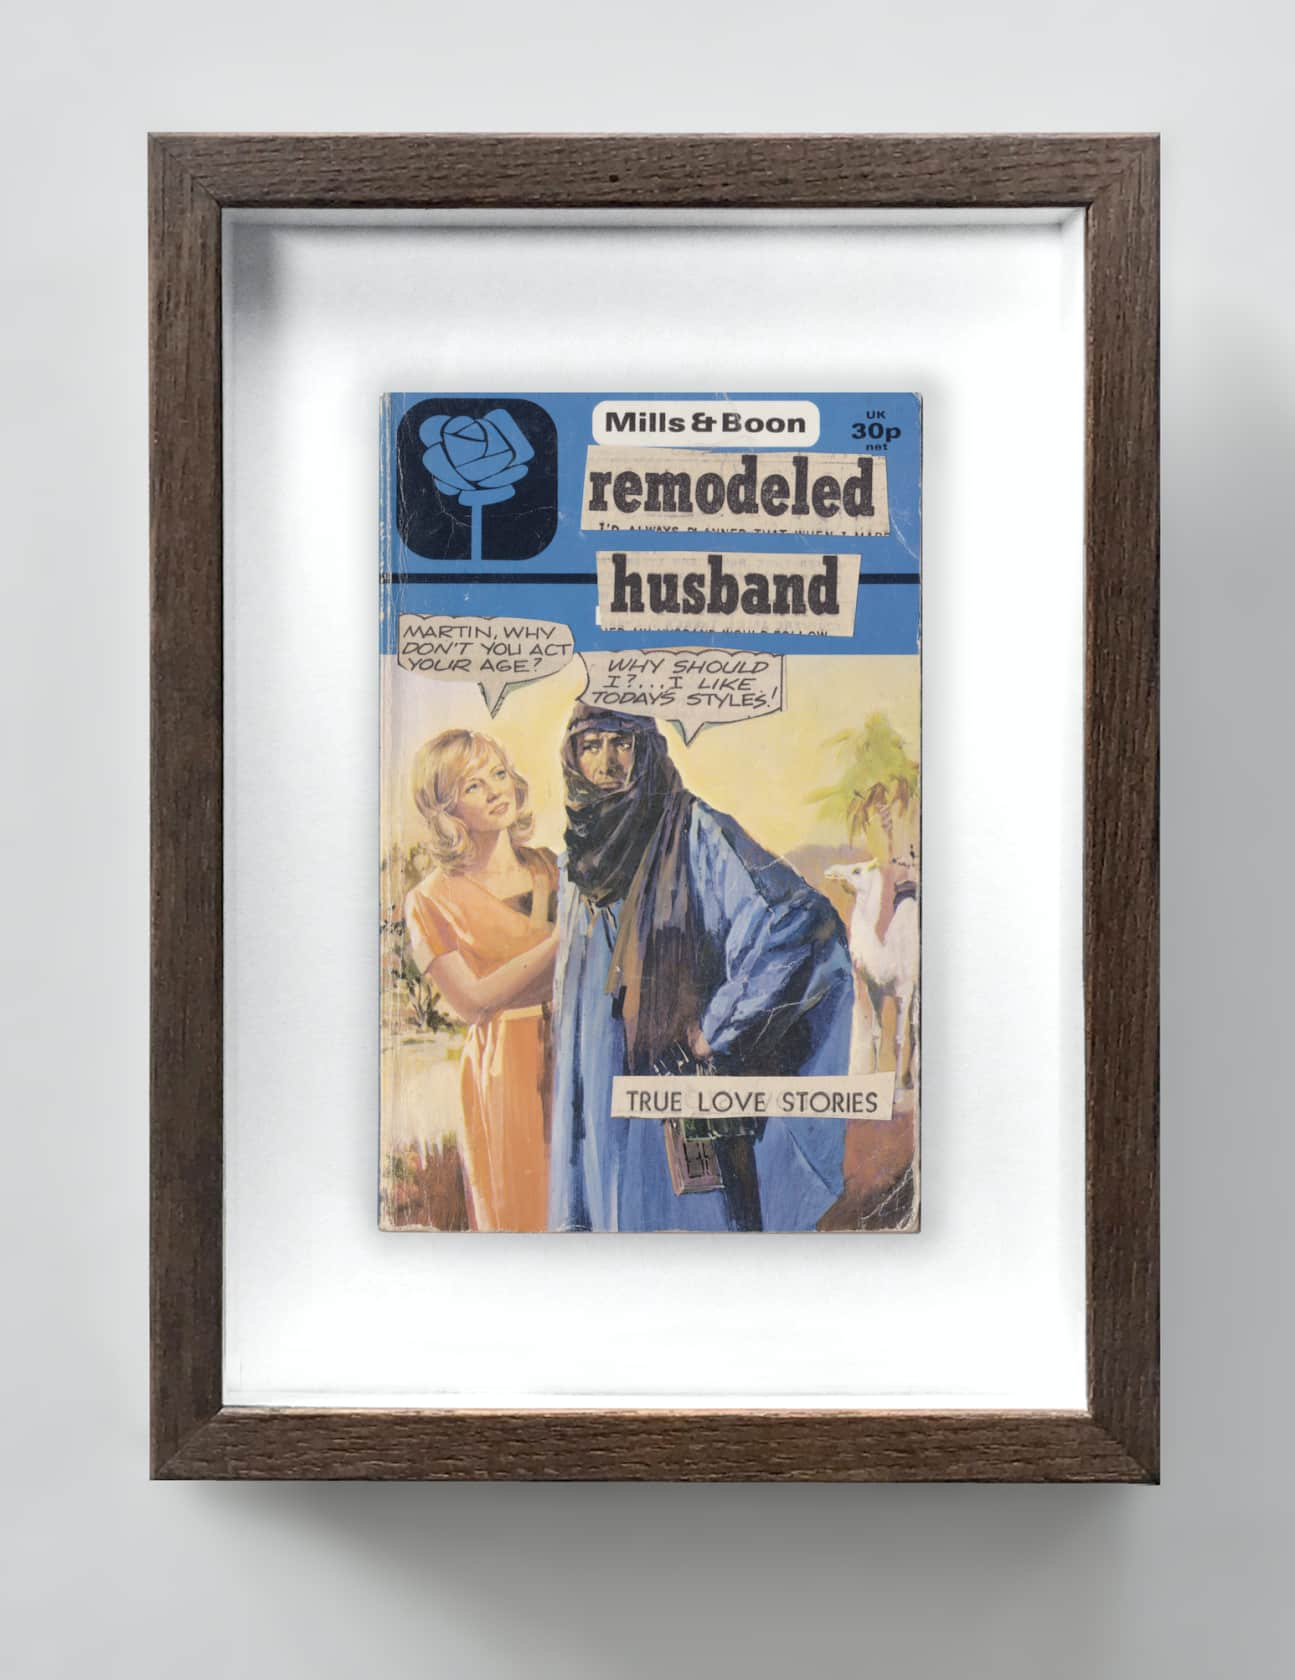 the connor brothers Remodeled Husband Collage on vintage paperback book